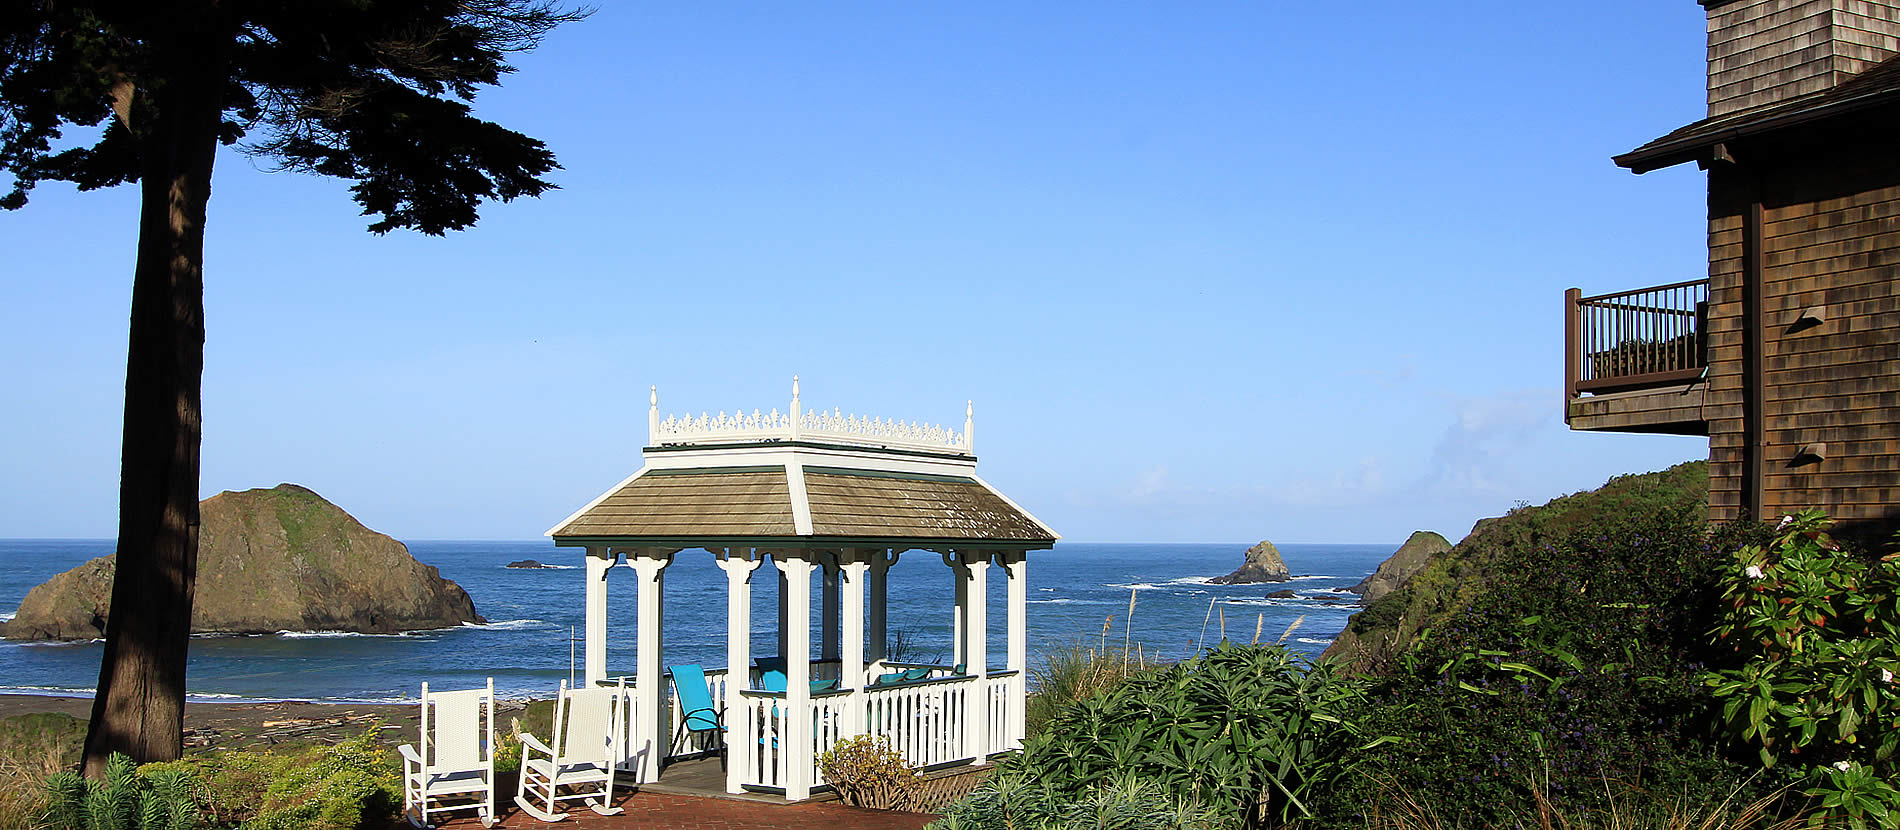 mendocino oceanfront bed and breakfast elk cove inn gazebo